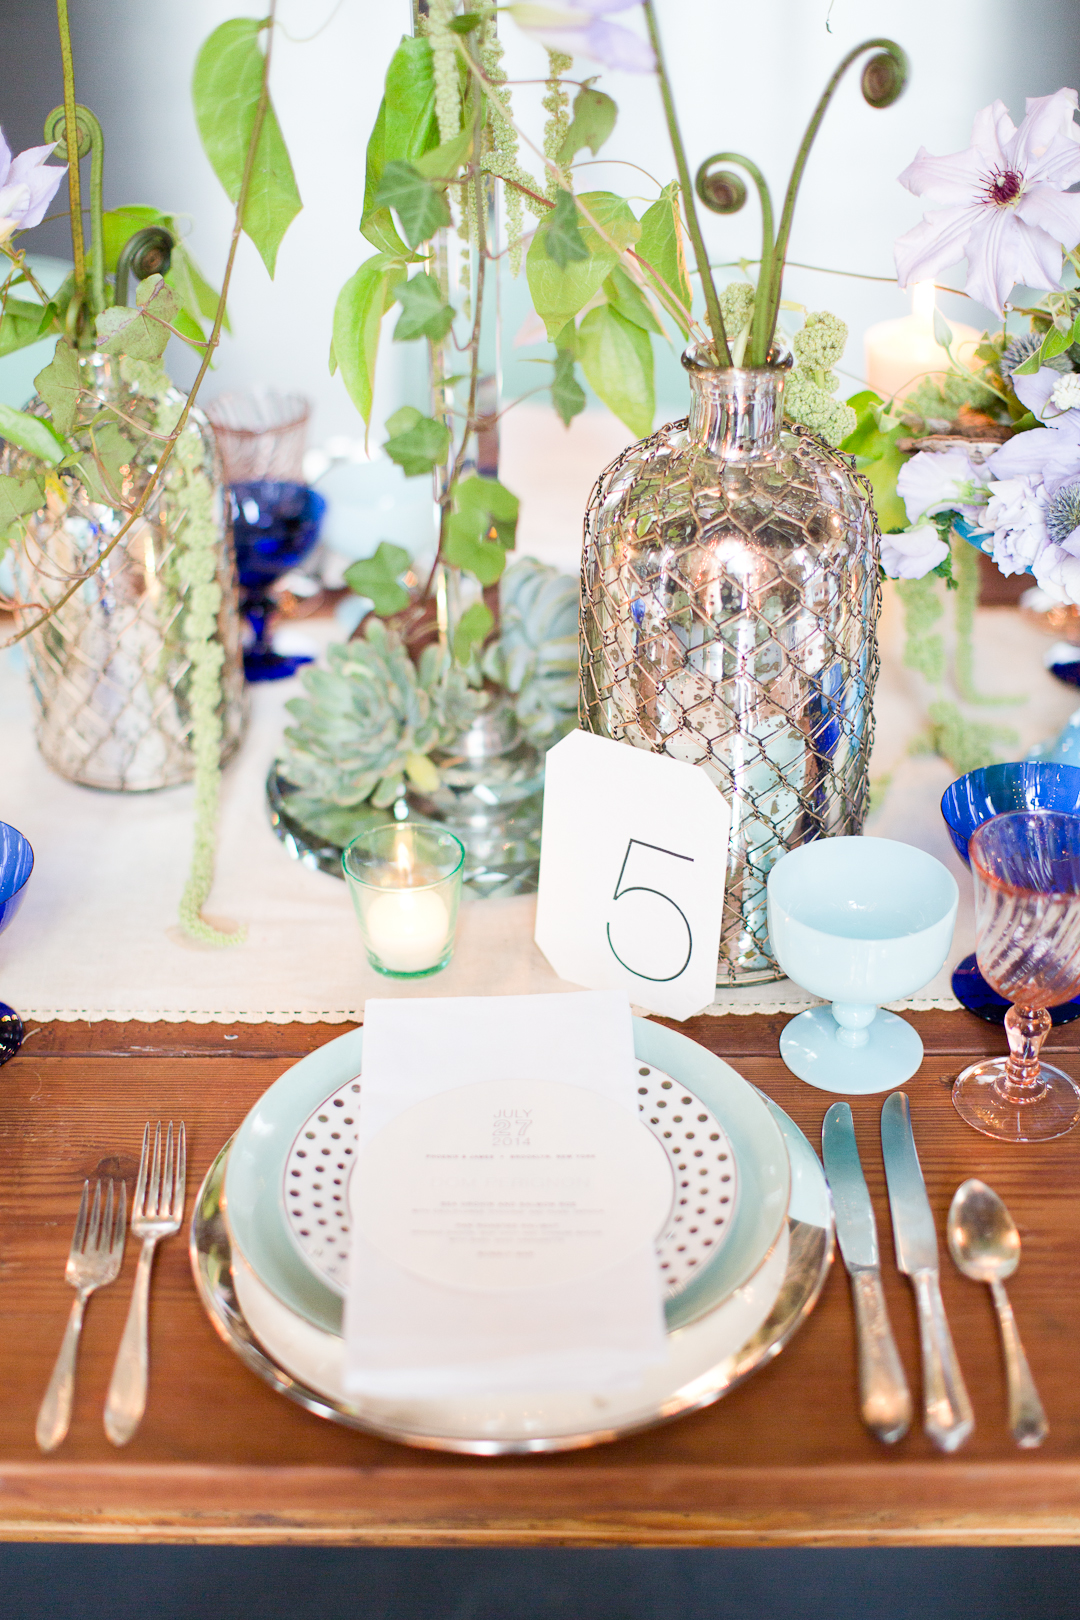 melissa kruse photography - bubbly bride styled shoot (the green building brooklyn) final web-400.jpg